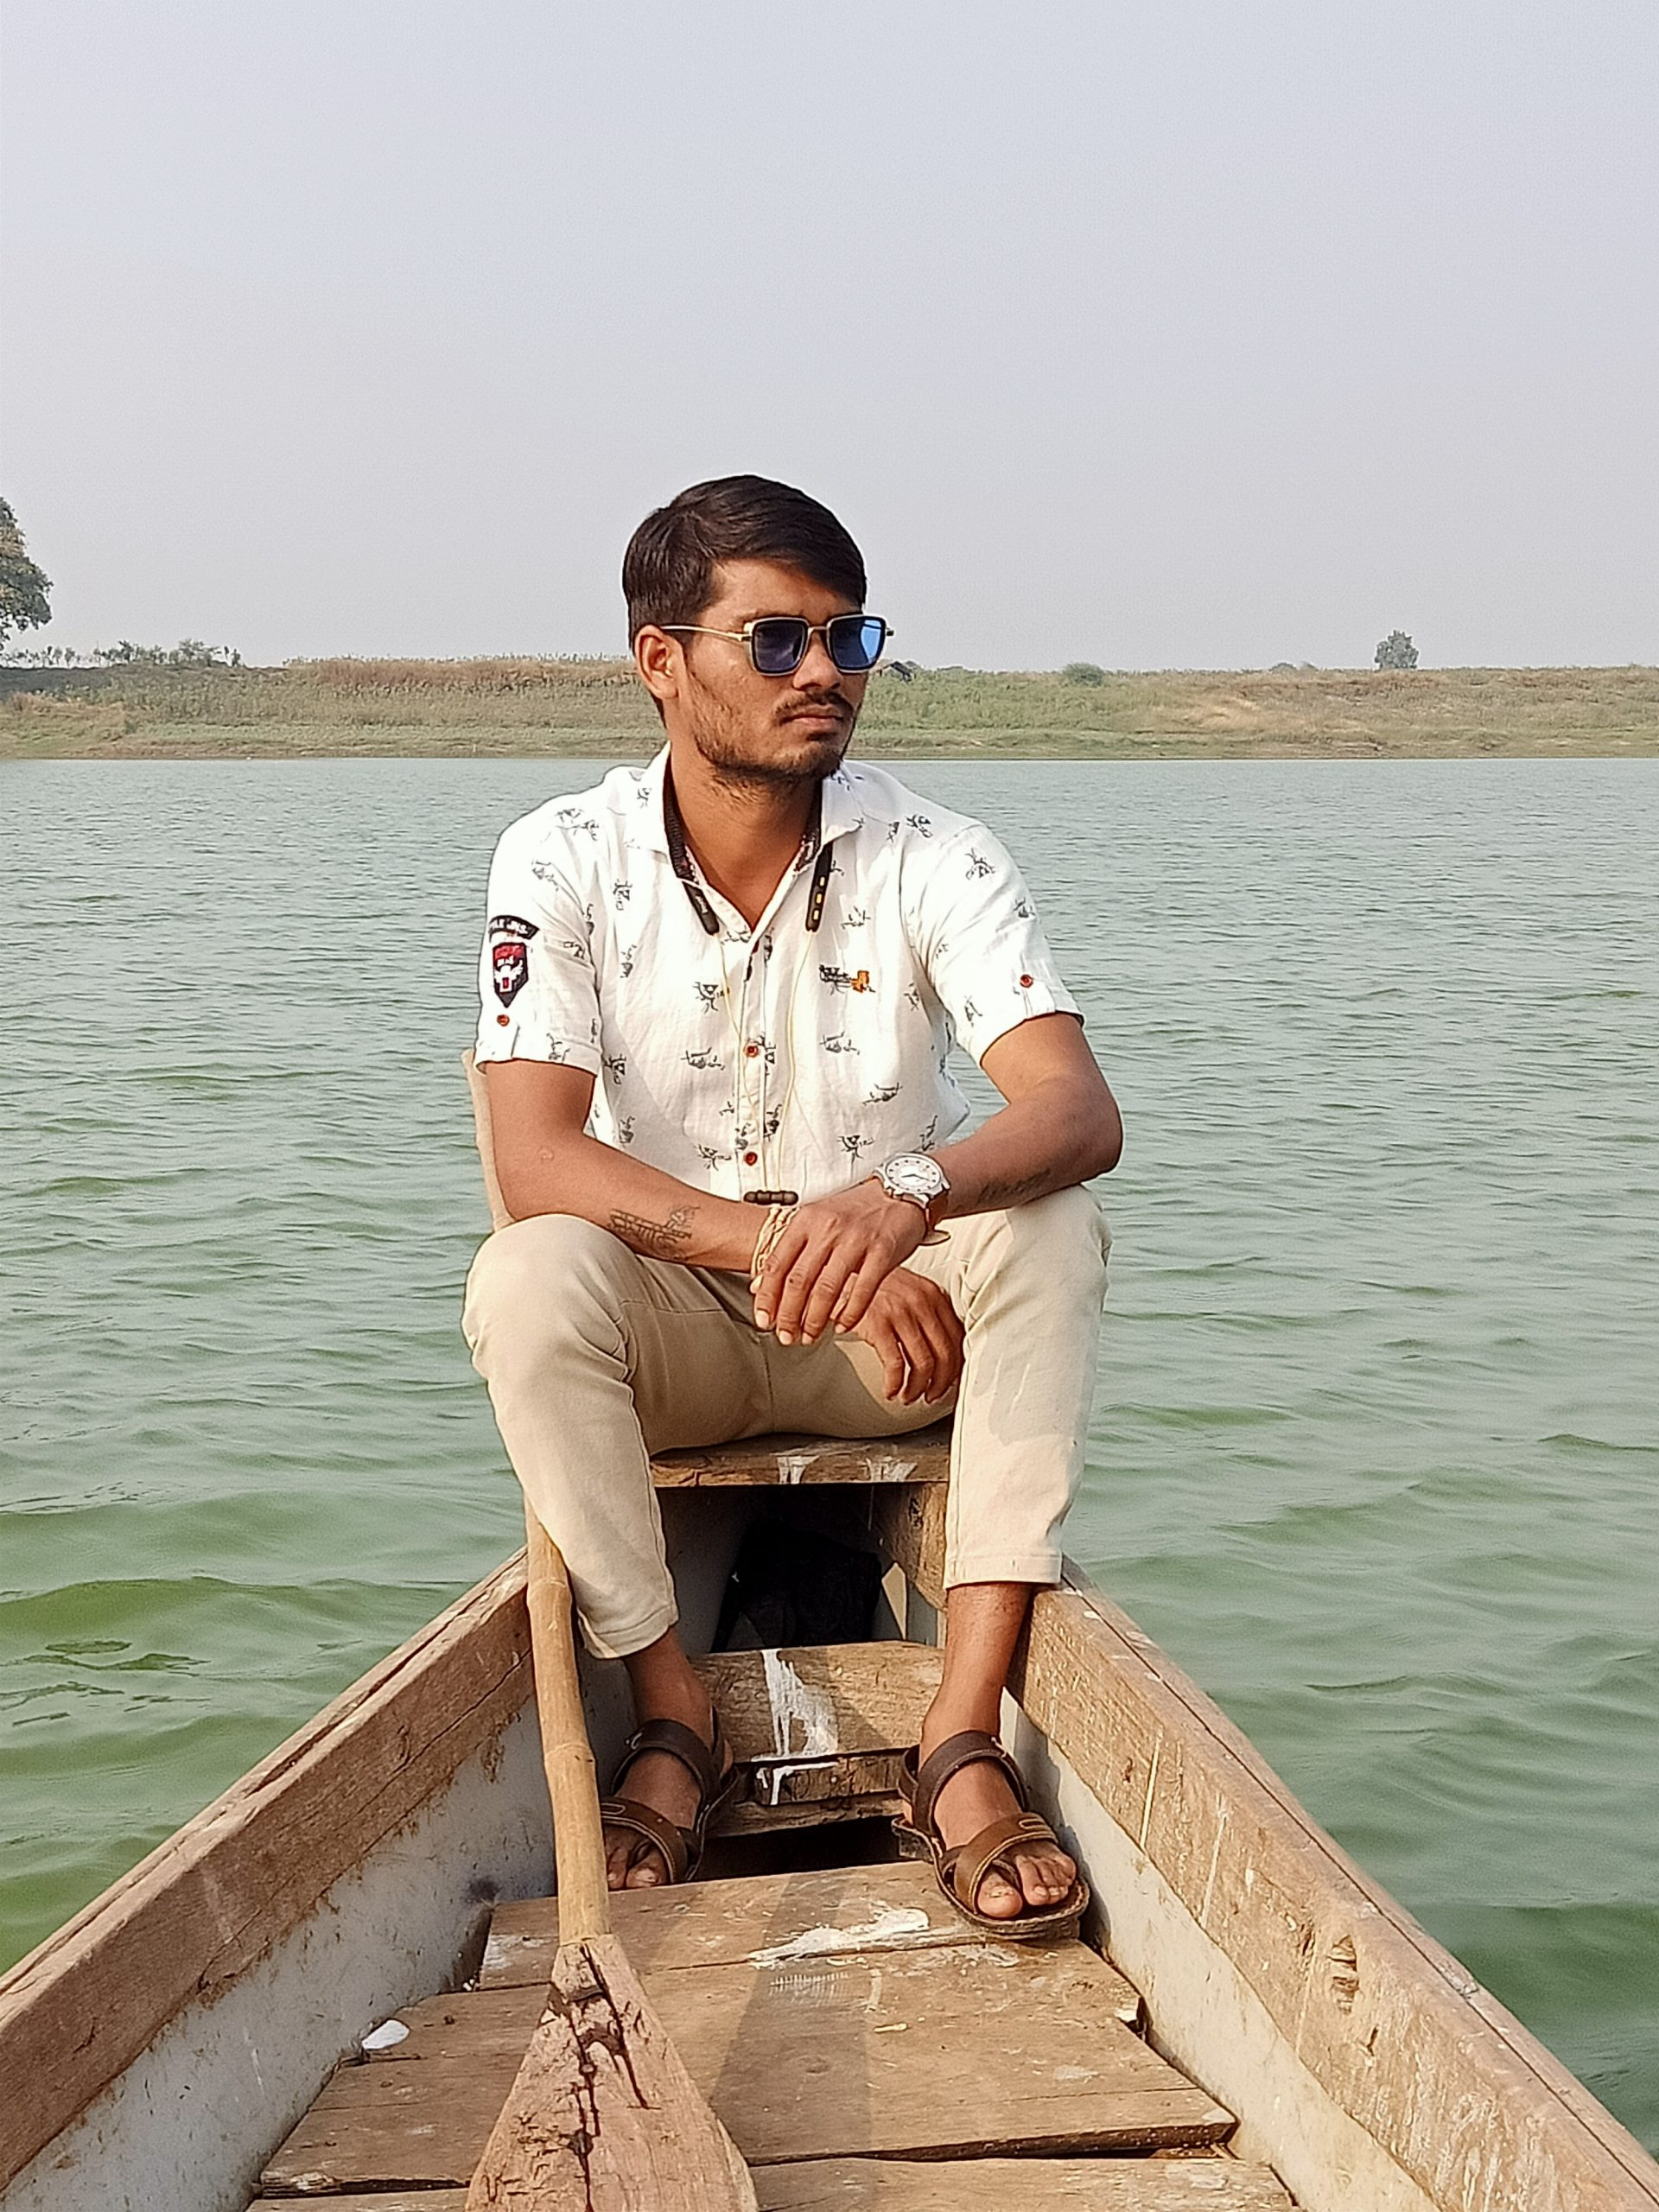 Boy giving pose while sitting in the boat